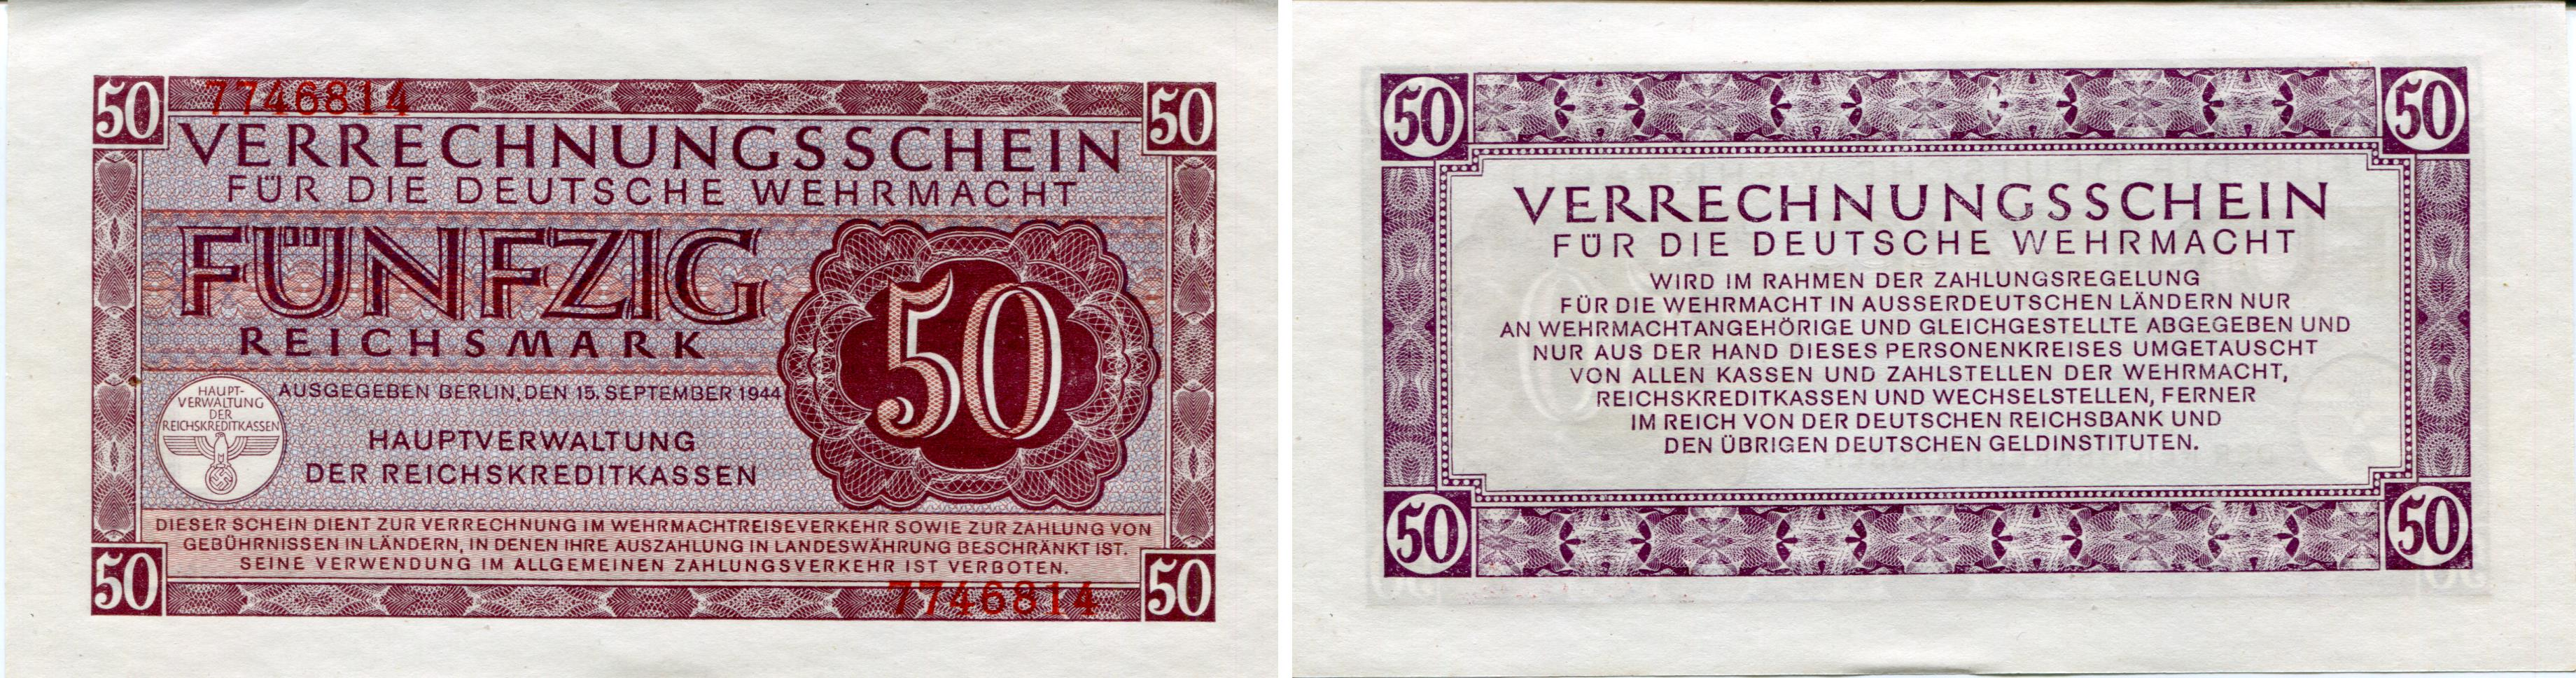 World war ii coins and currency german wehrmacht military currency 50 reichsmark 1944 pm41 biocorpaavc Images